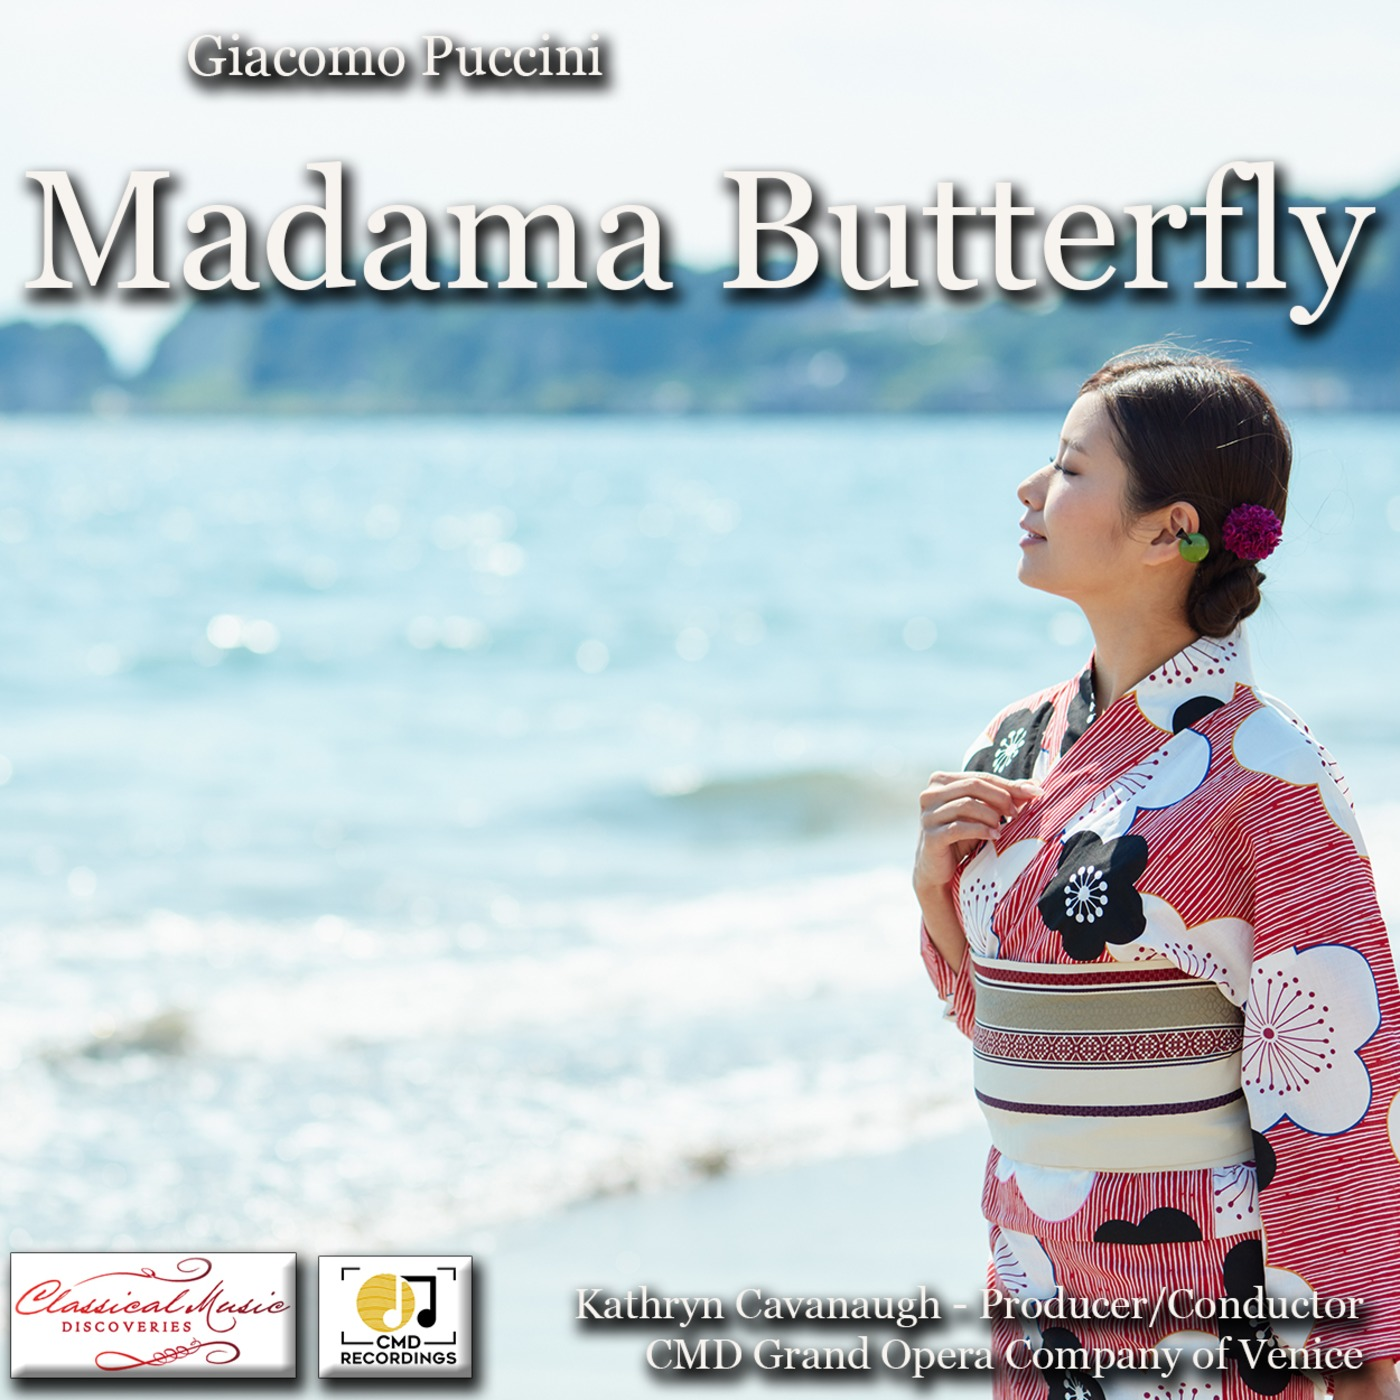 15004 Puccini - Madama Butterfly - Classical Music